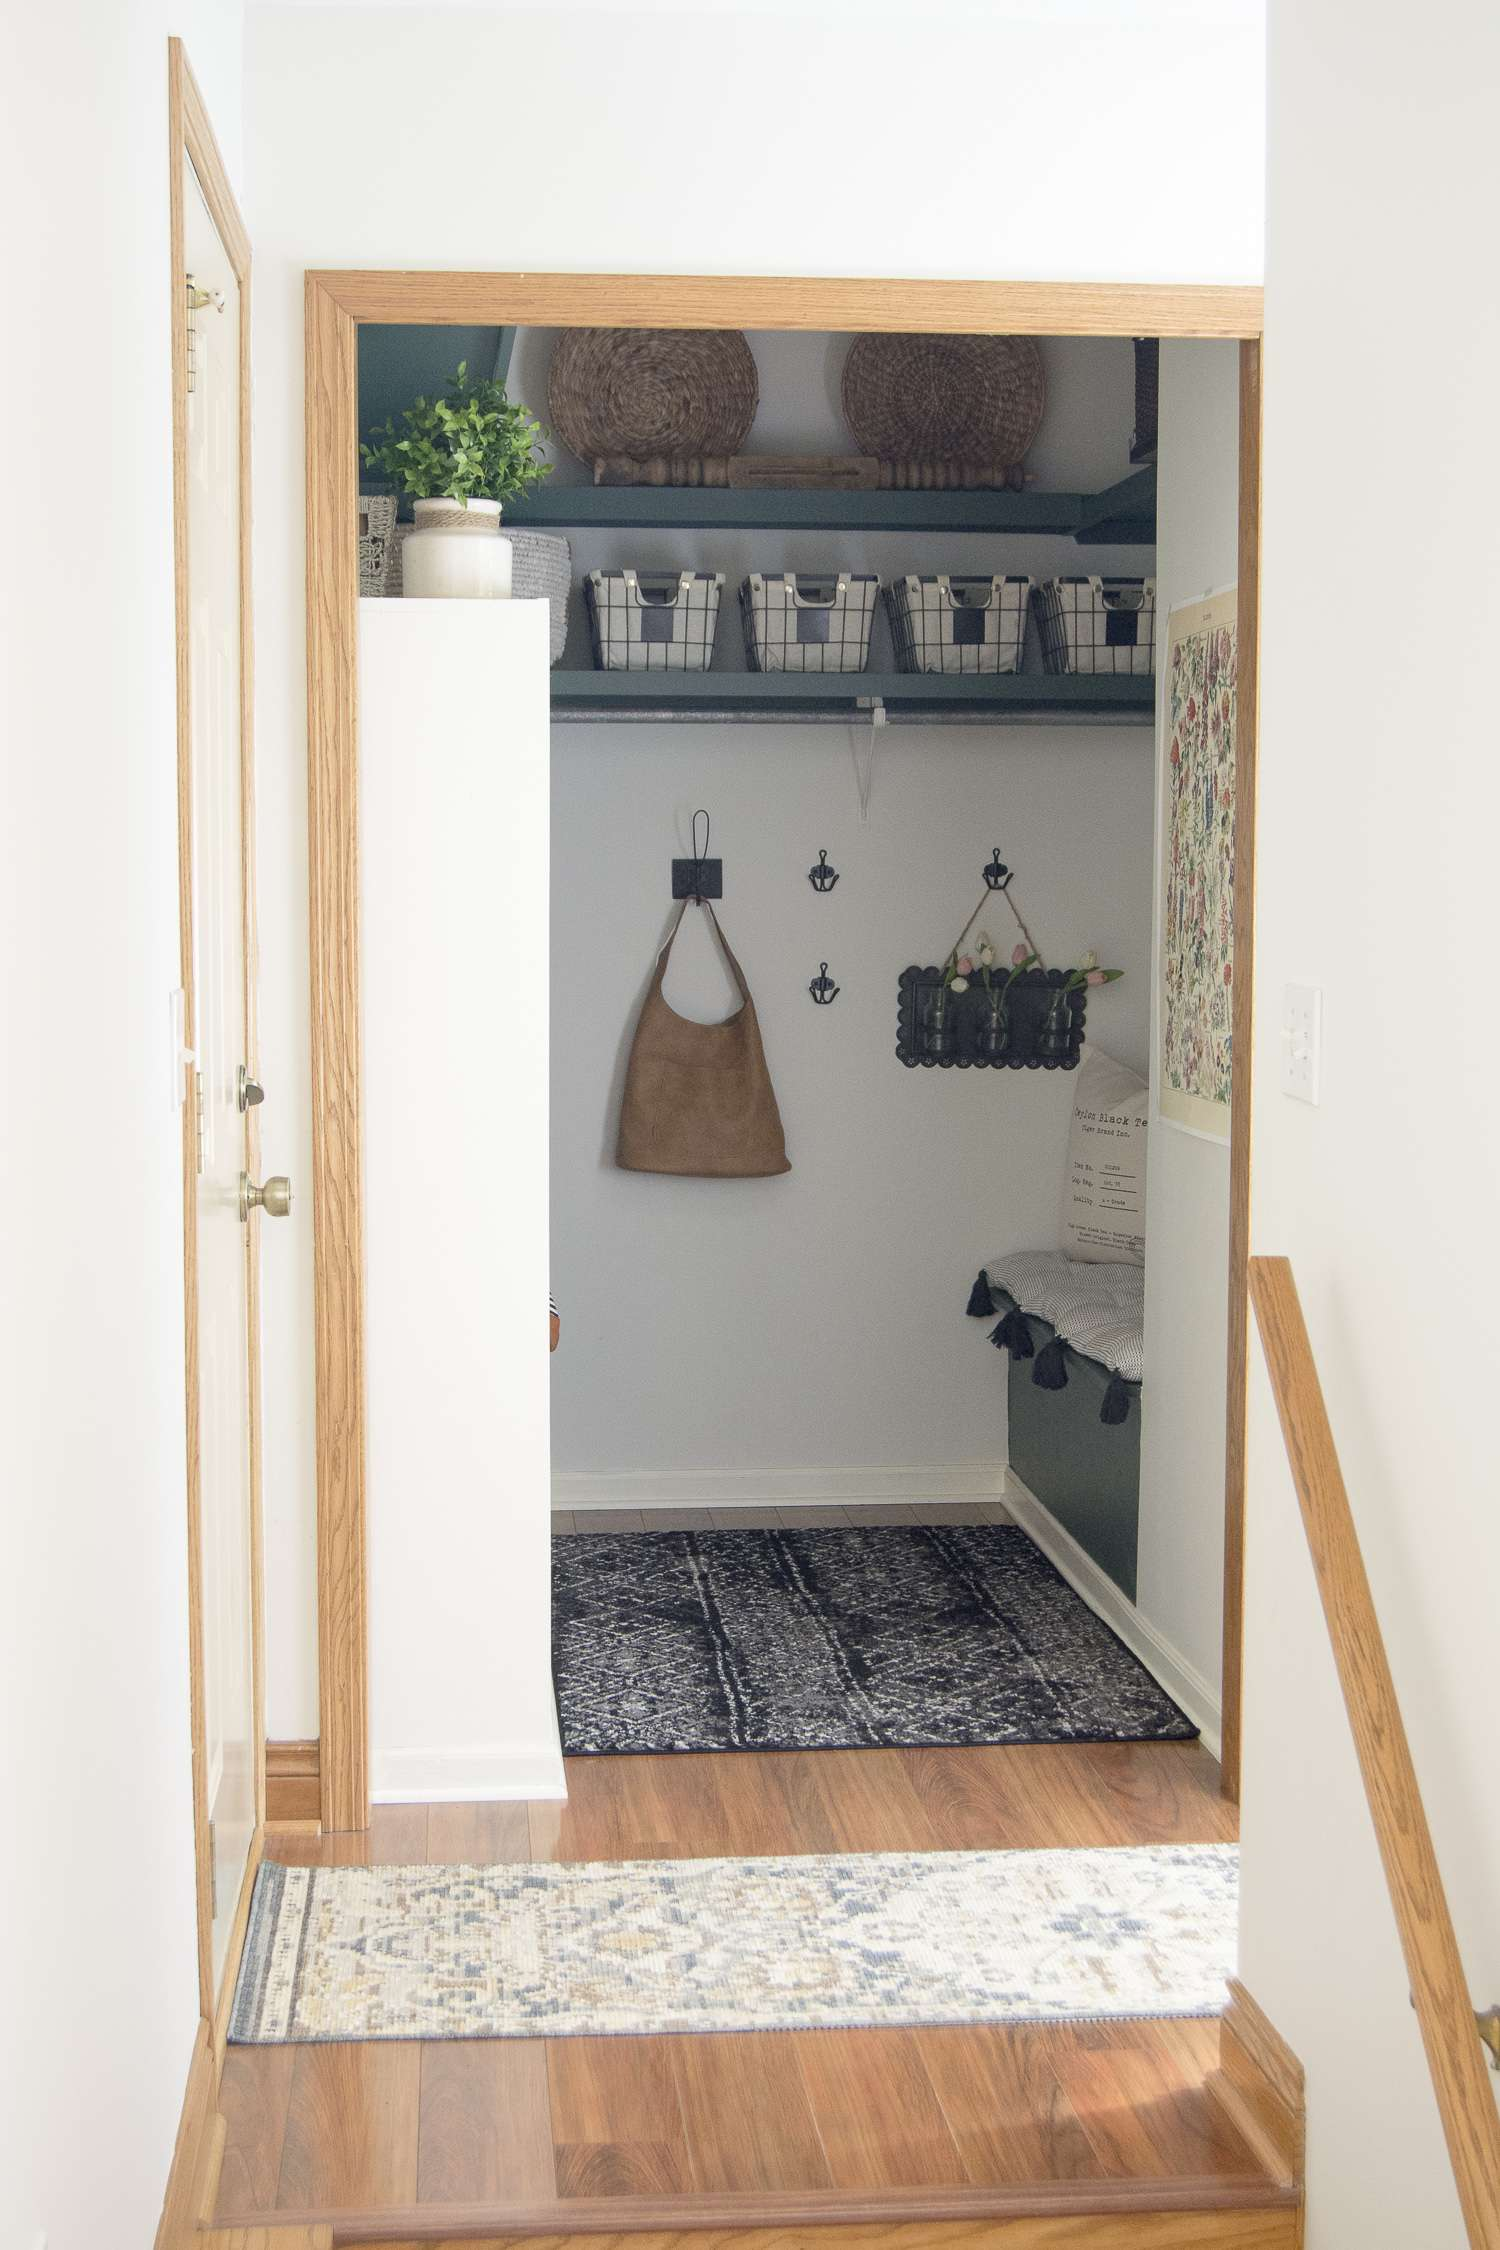 Home organization ideas for small mudrooms.